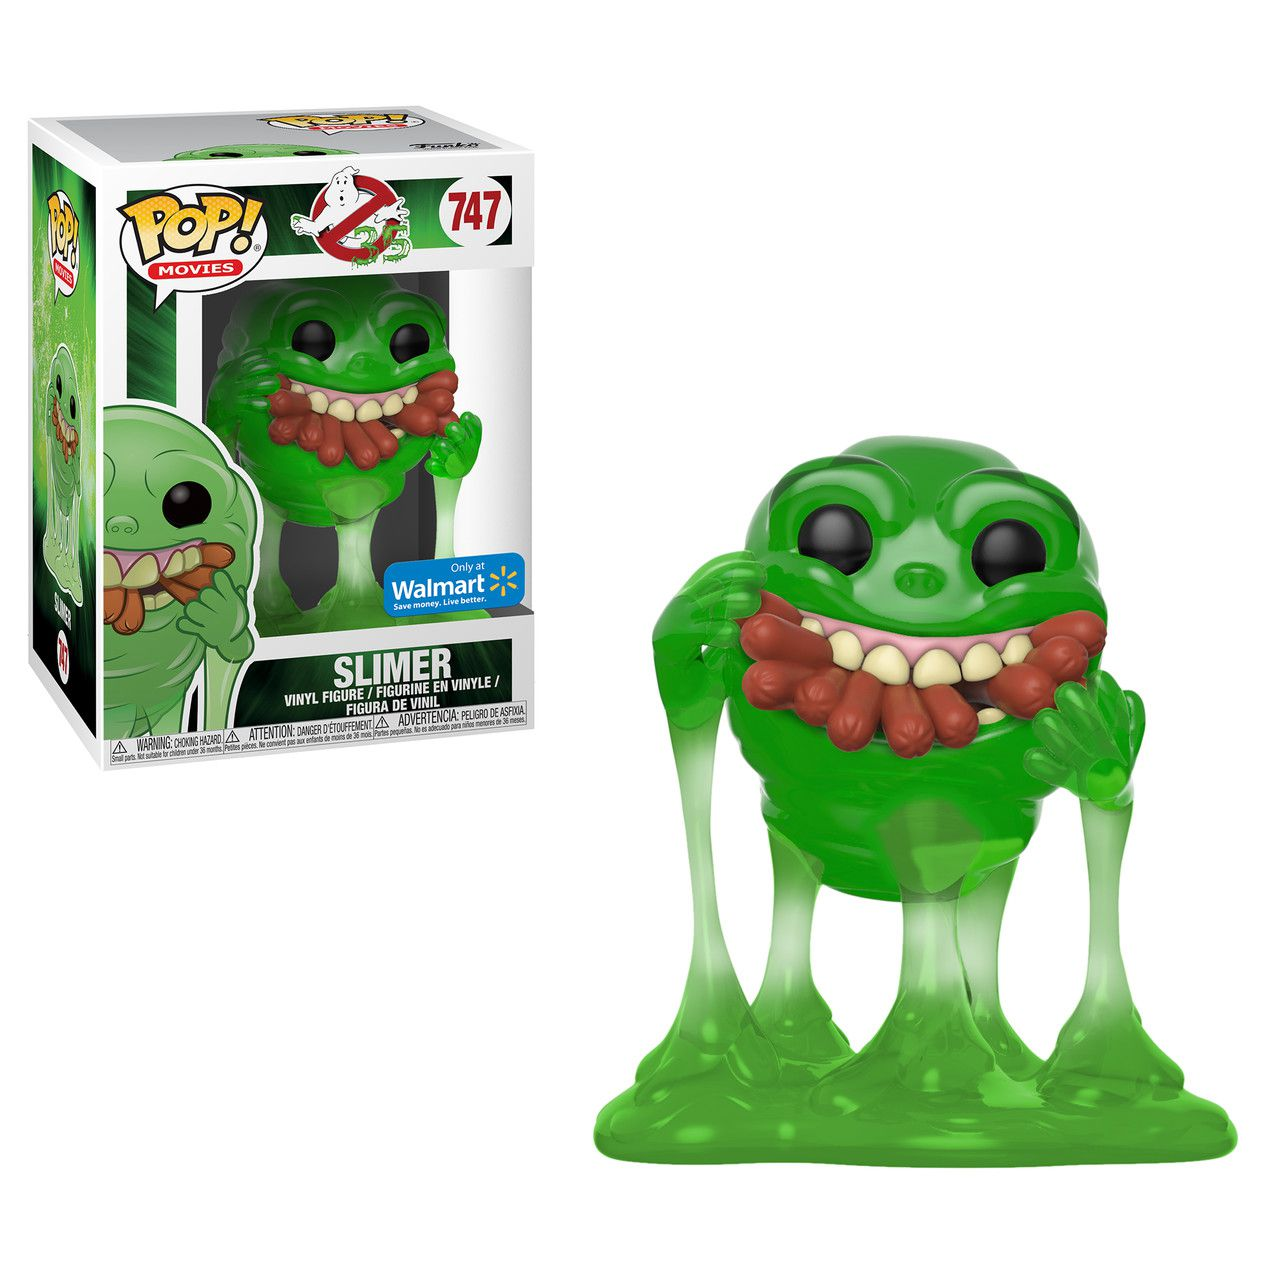 Pop! Geleia (Slimer With Hot Dogs) (GITD) : Os Caça-Fantasmas (Ghostbusters) Exclusivo #747 - Funko